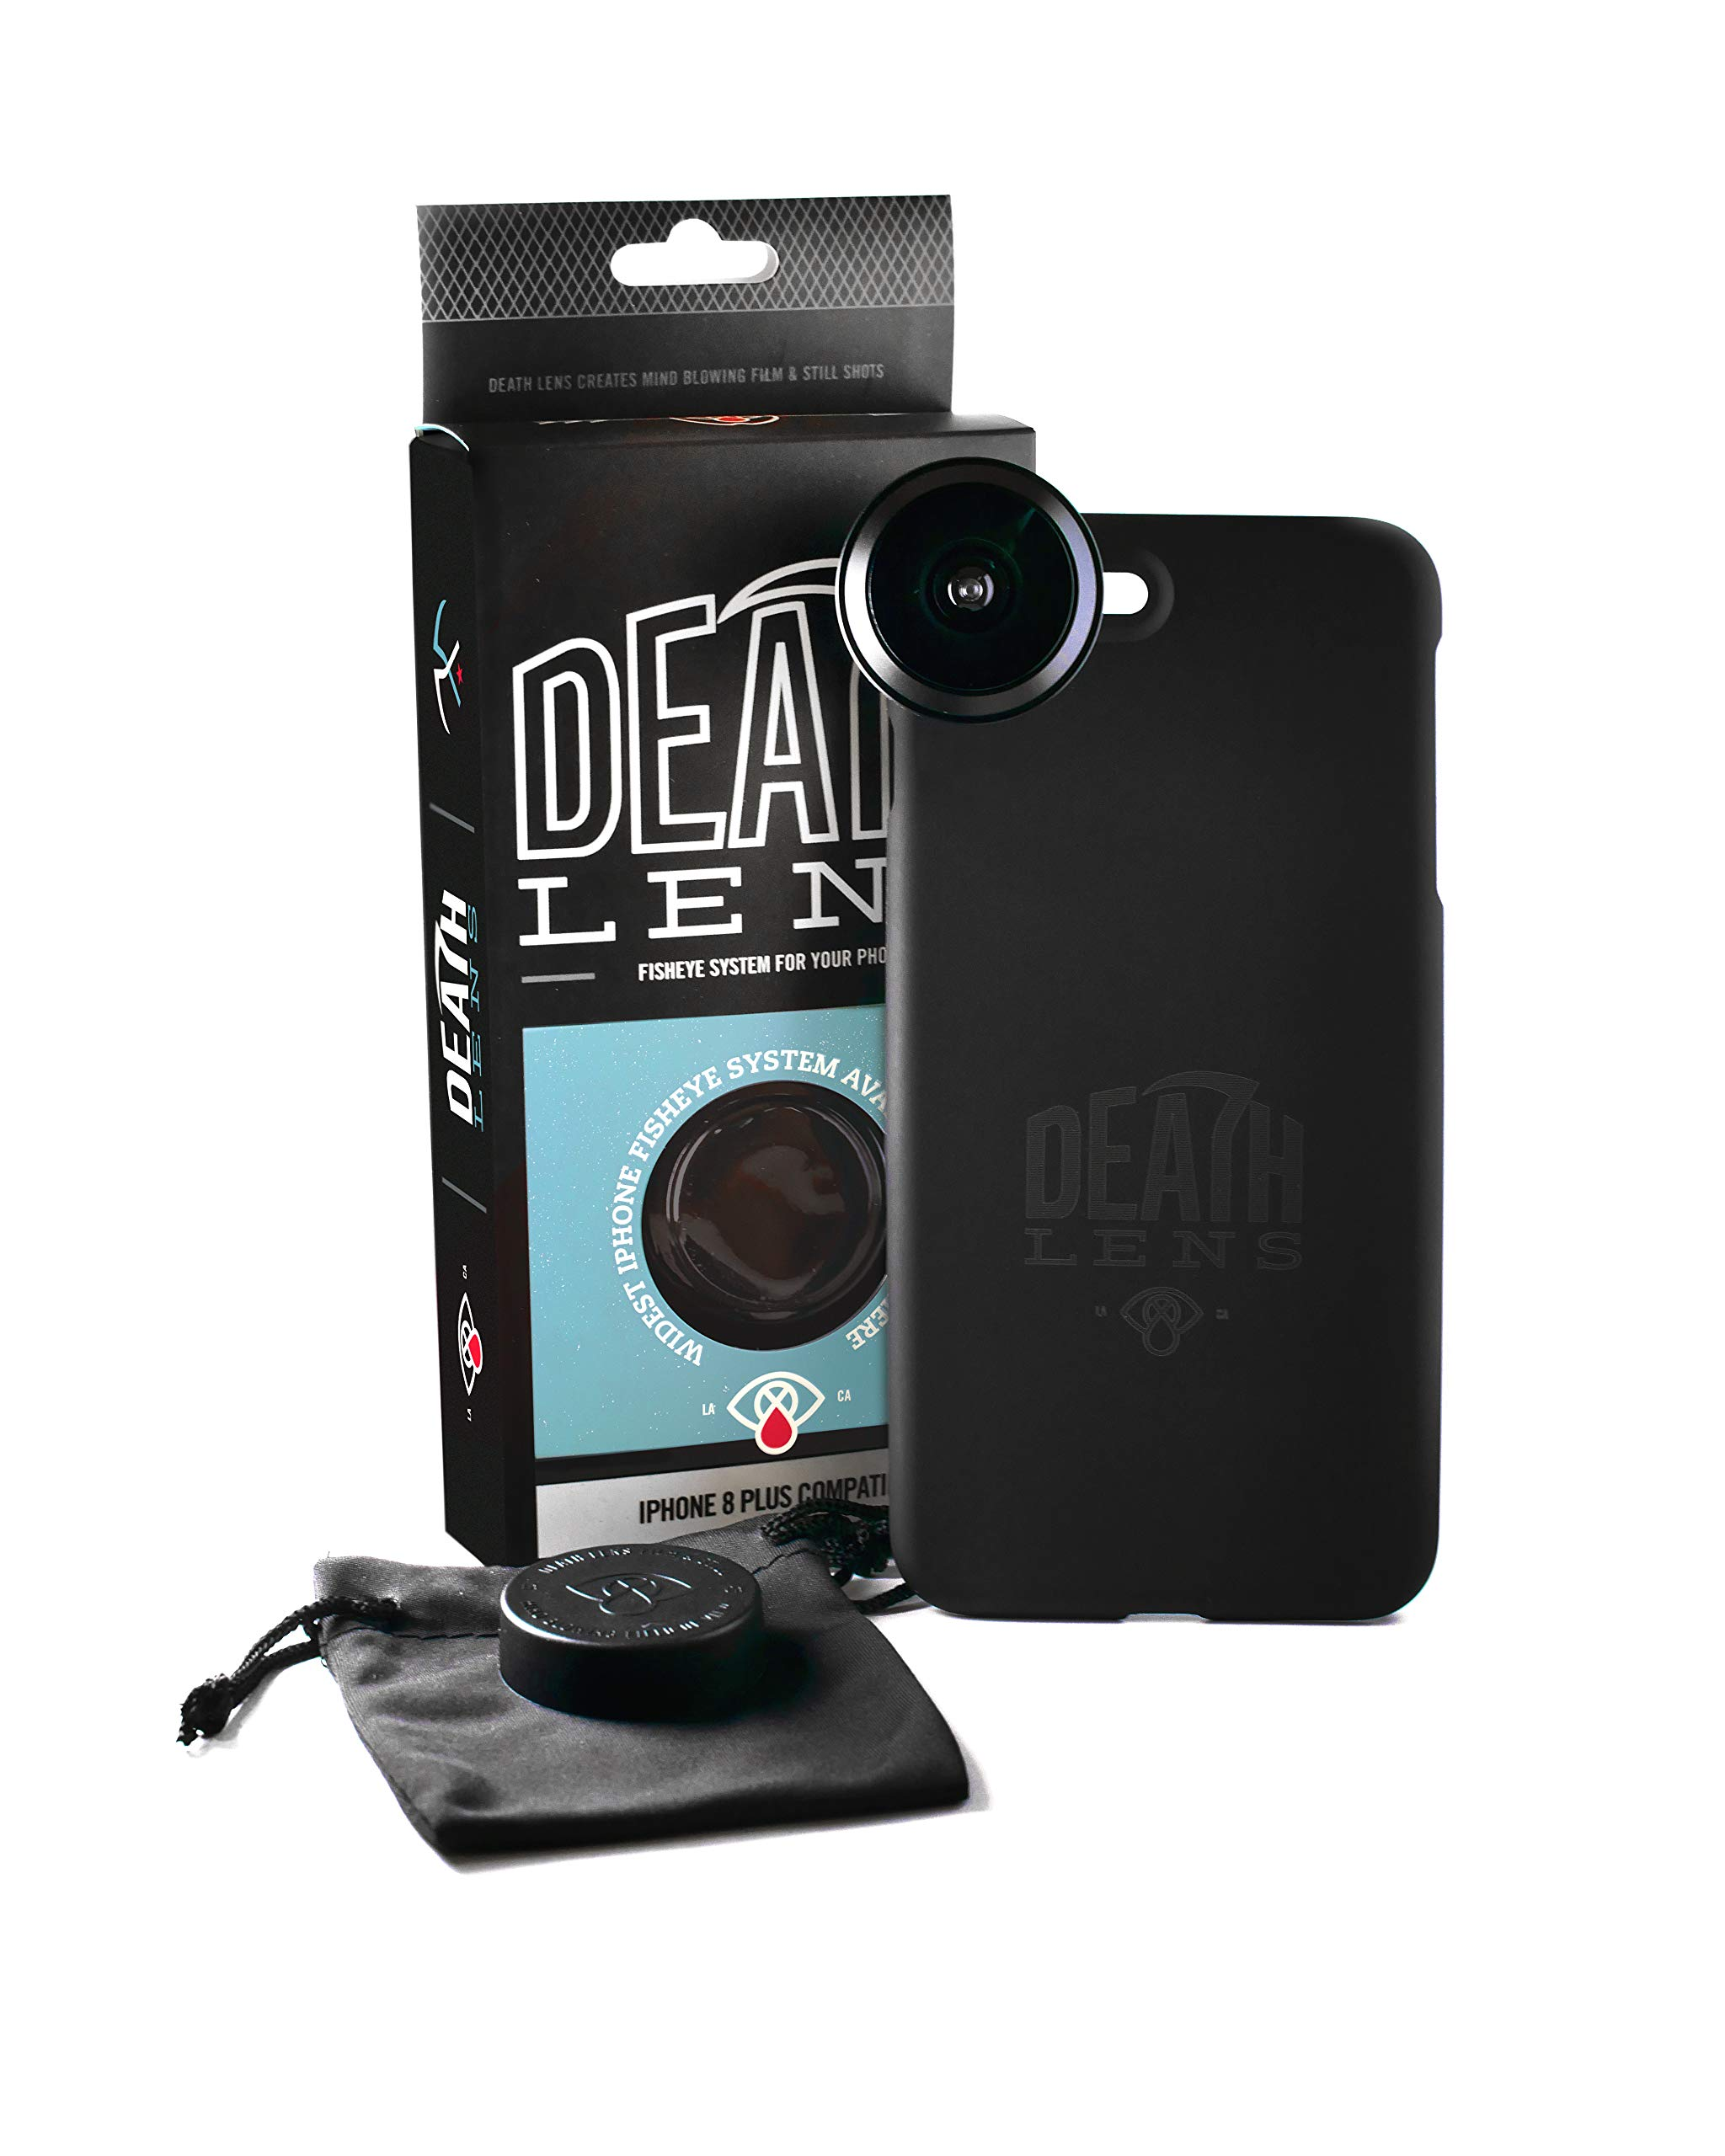 Death Lens iPhone 8 Plus Fisheye 200 Degree Professional Photo HD - Perfect for Skateboarding, Snowboarding, Skiing, and Traveling